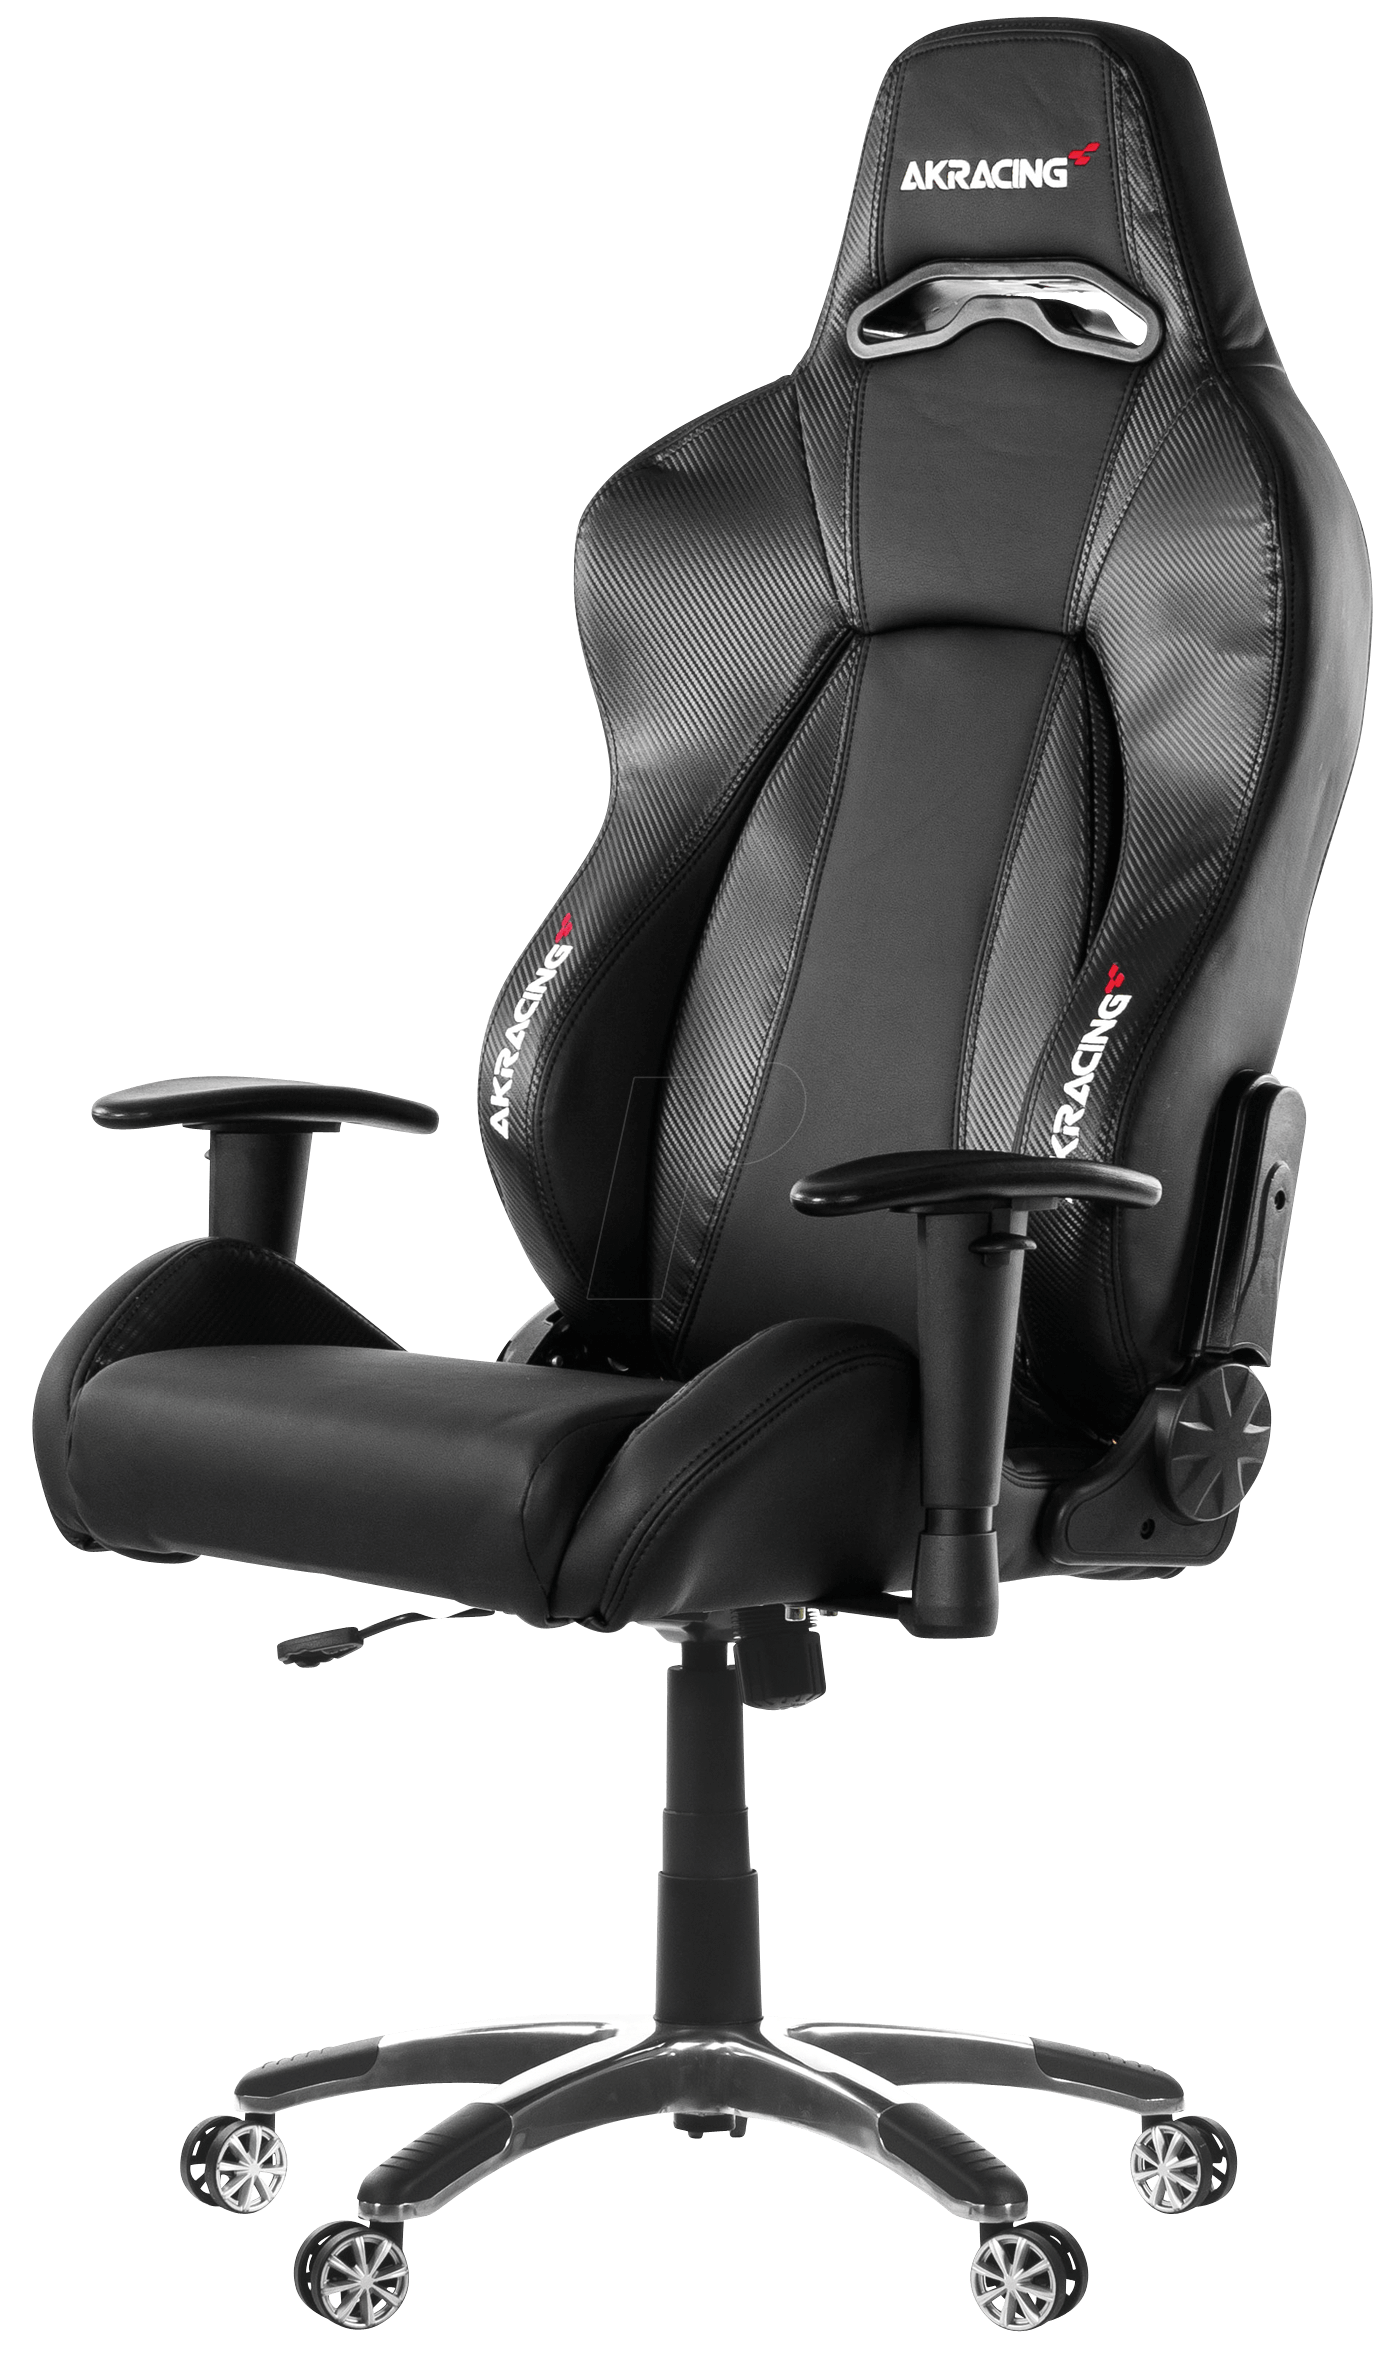 akracing premium v2 gaming chair preisvergleich. Black Bedroom Furniture Sets. Home Design Ideas